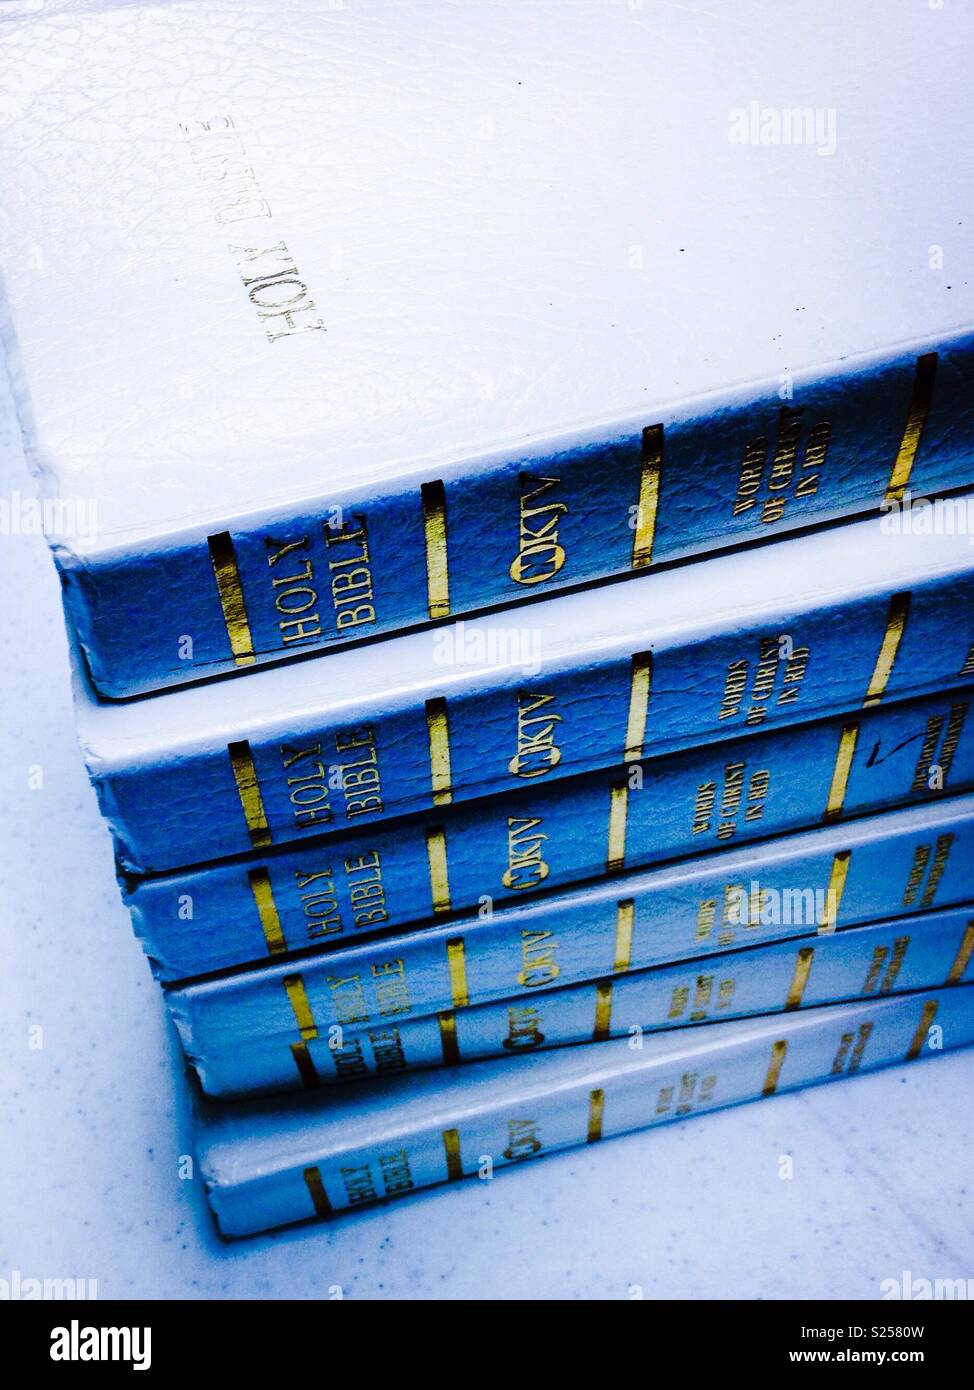 White background, stack of white Sunday School Bibles with blue shadow - Stock Image